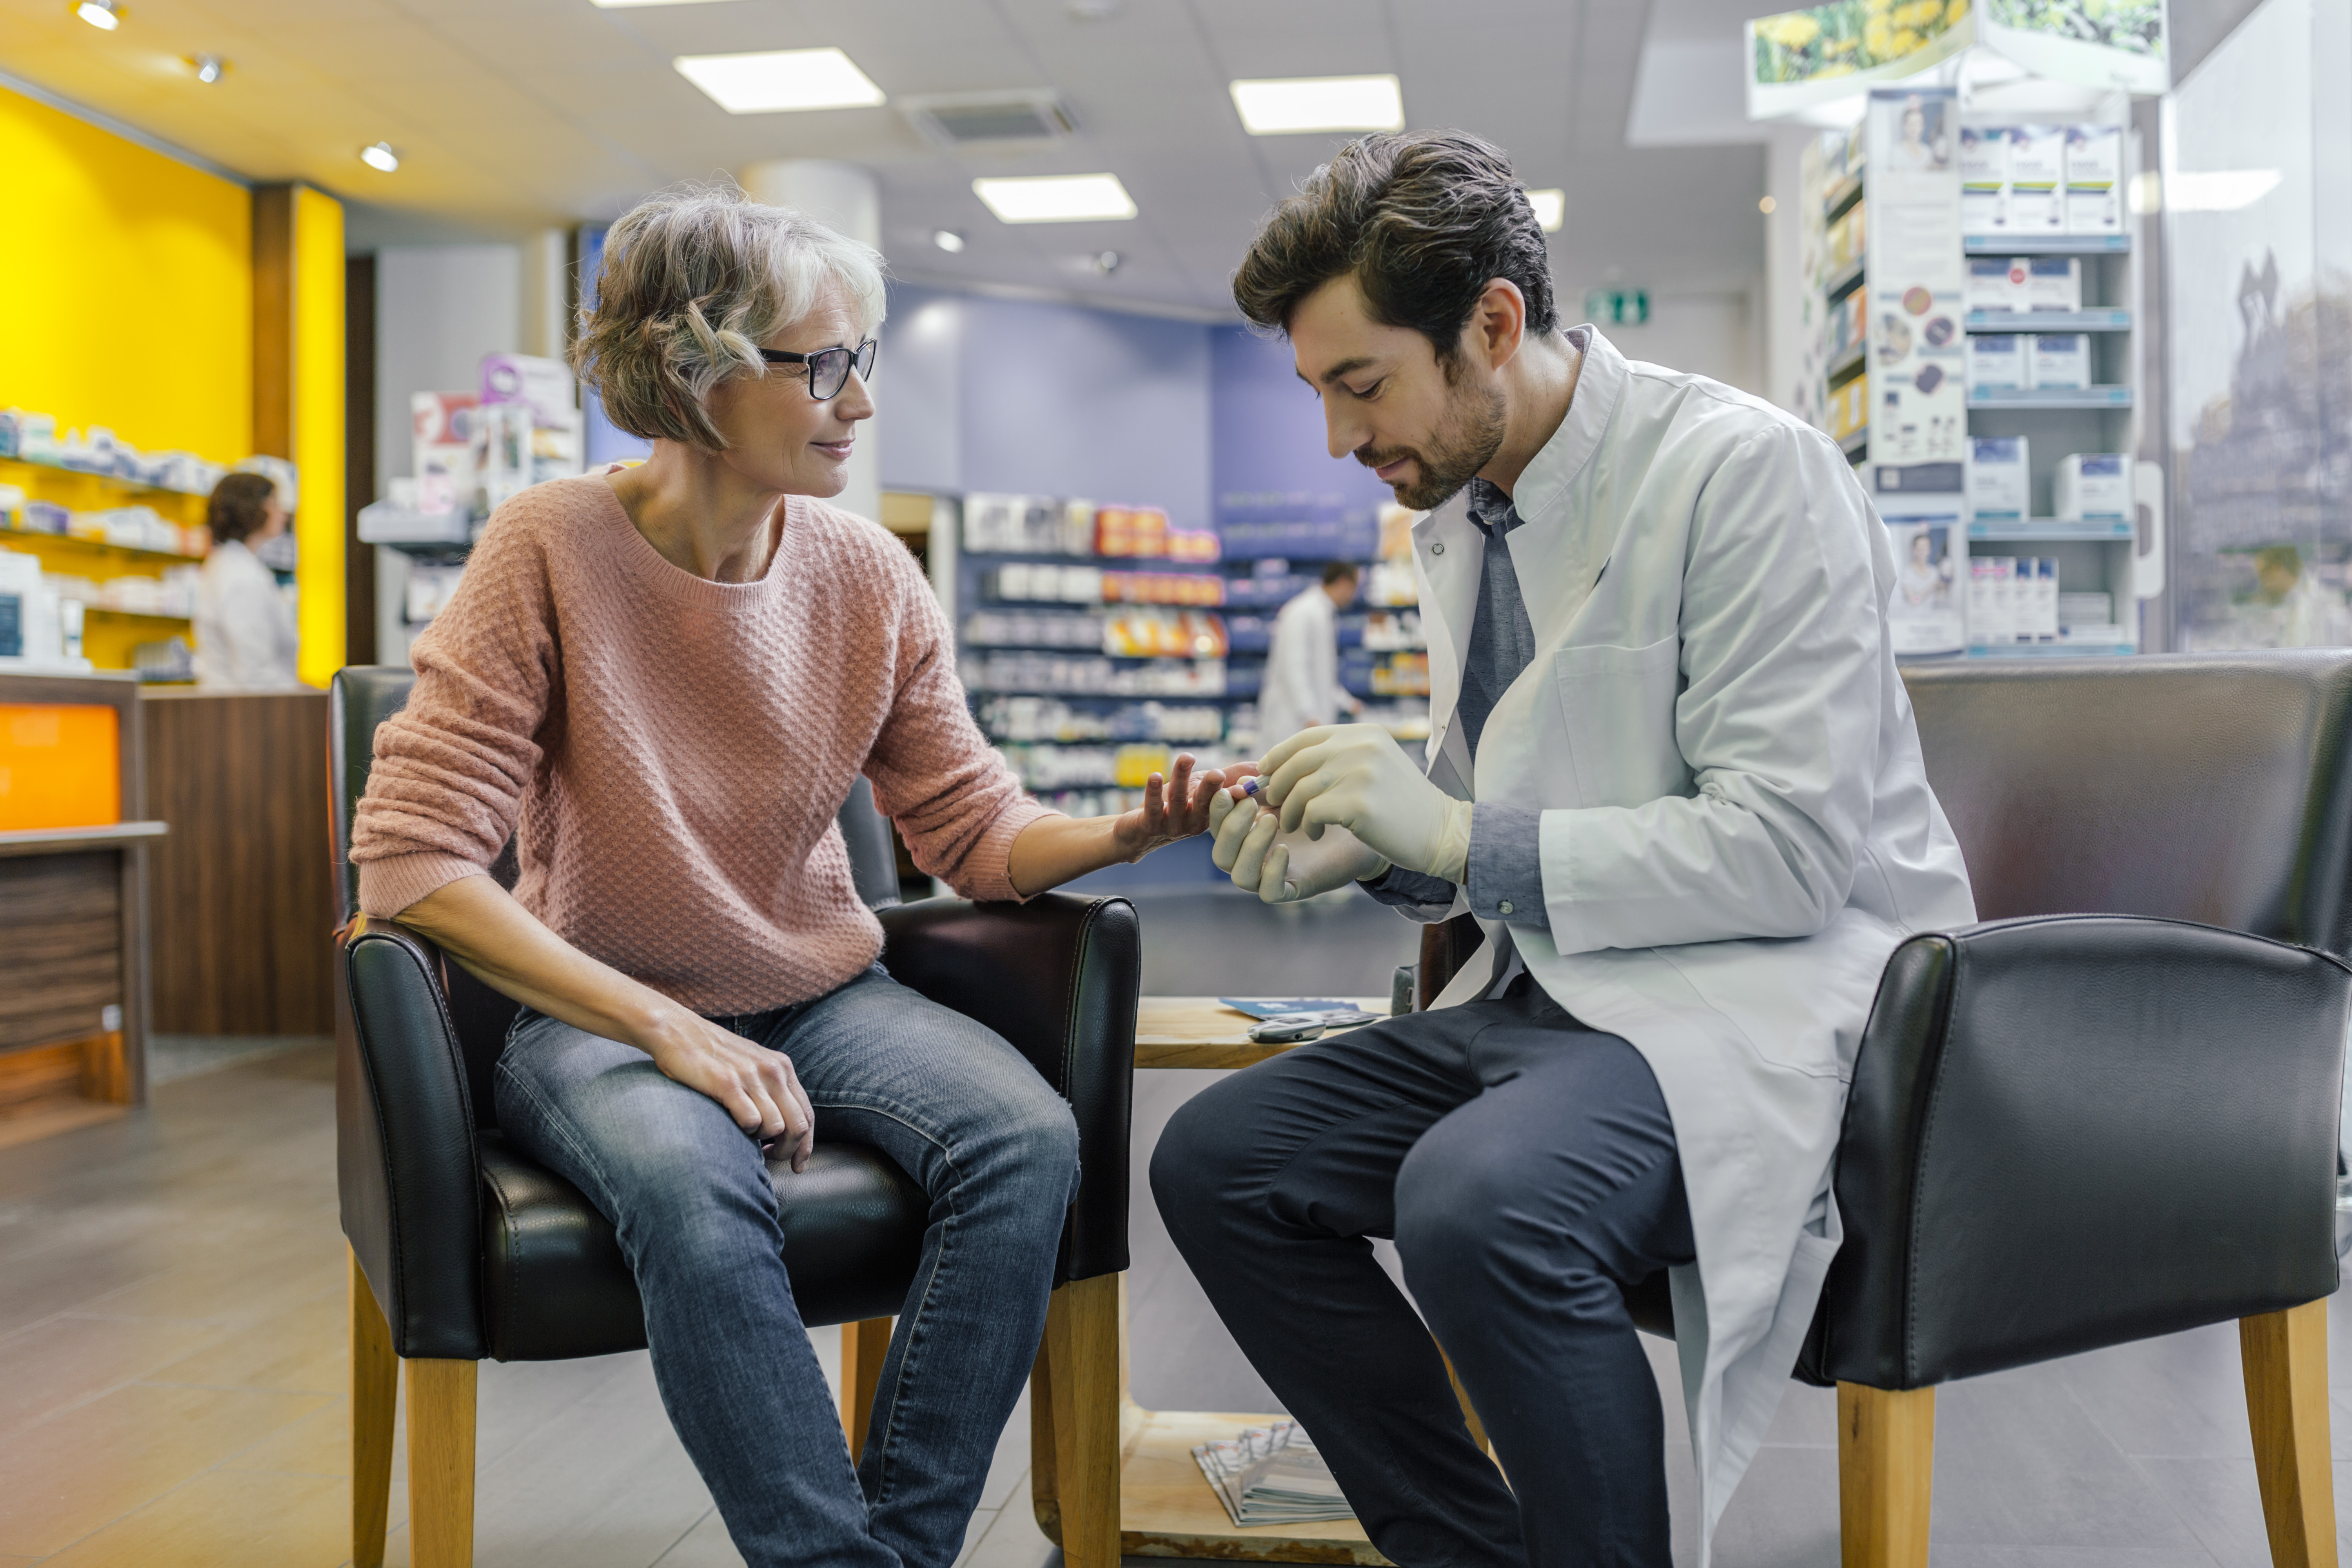 Pharmacist measuring blood sugar of customer in pharmacy. (Getty Images)